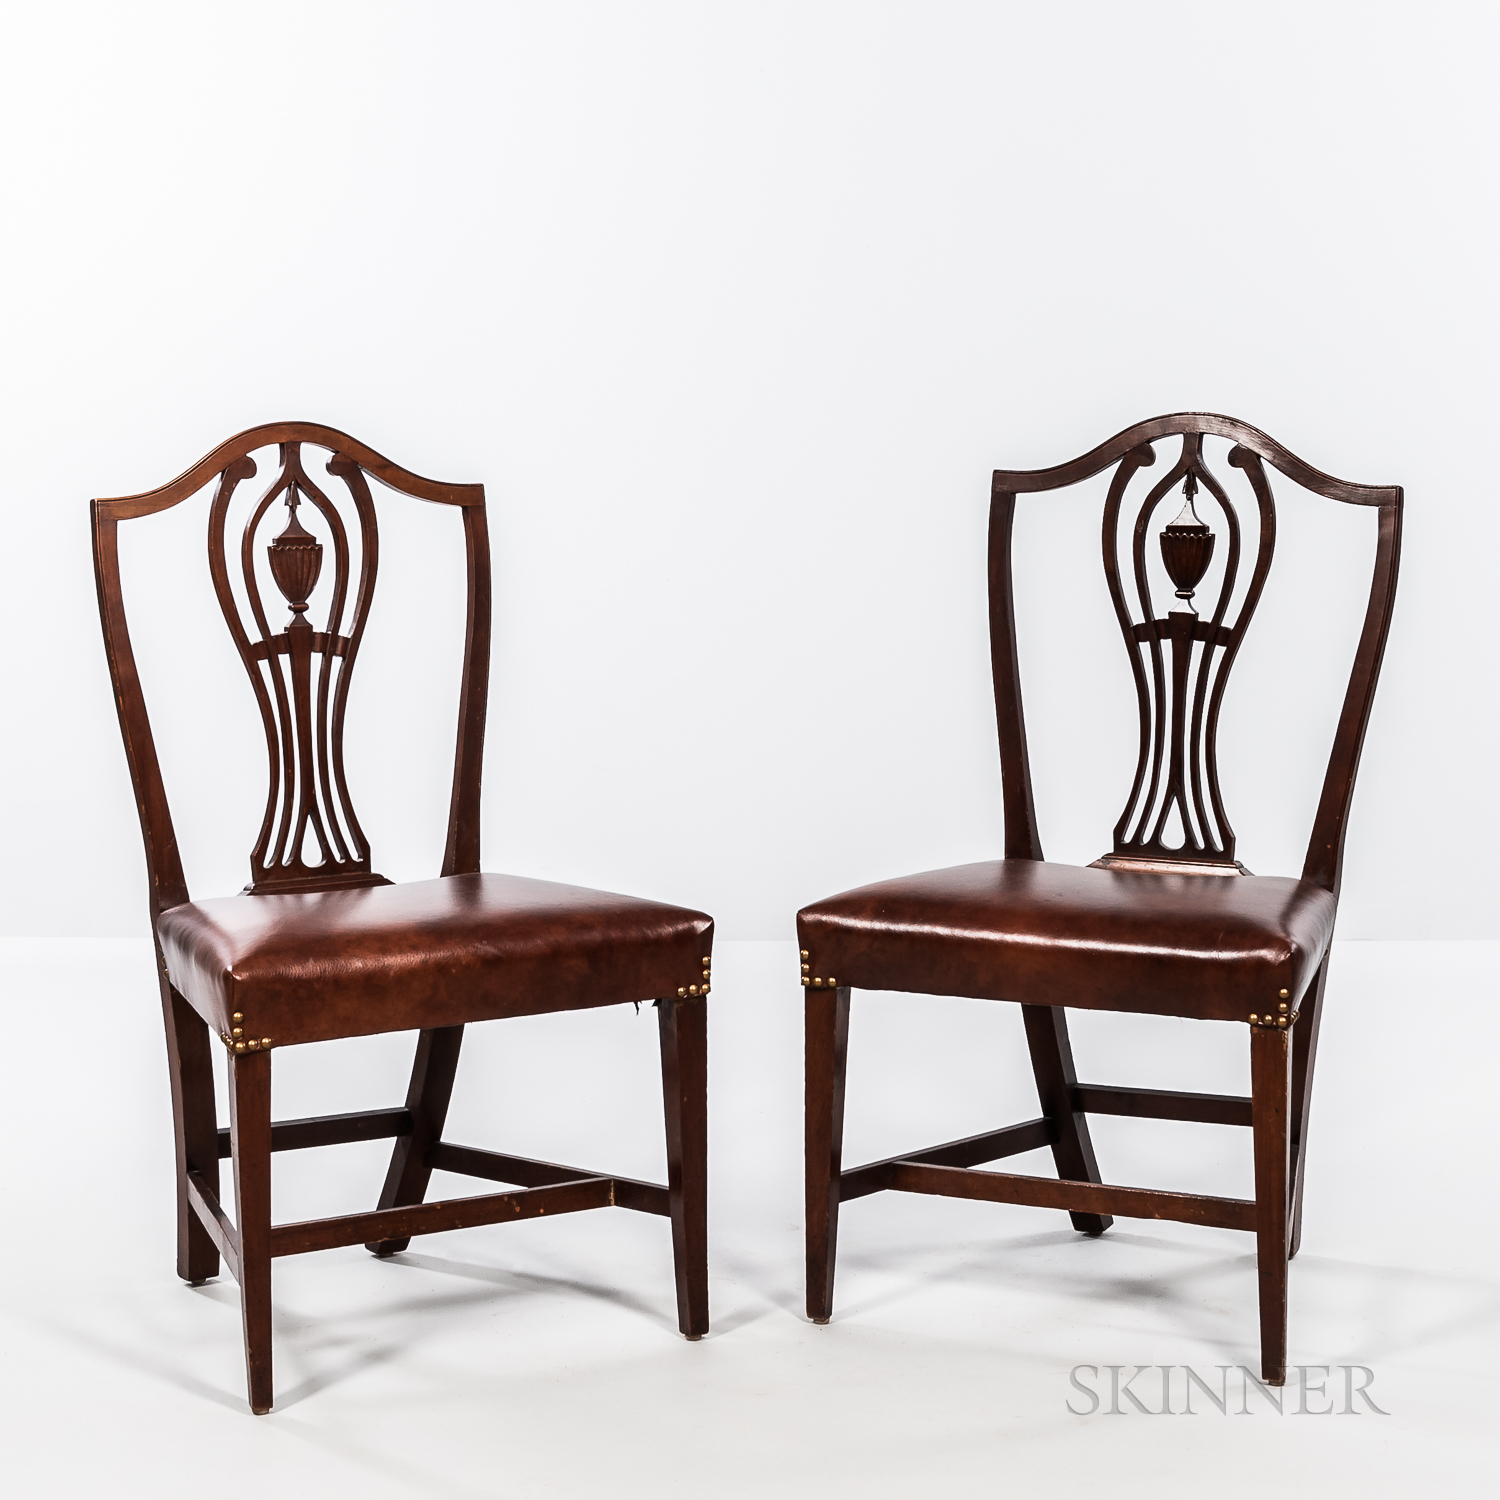 Pair of Carved Cherry Shield-back Chairs